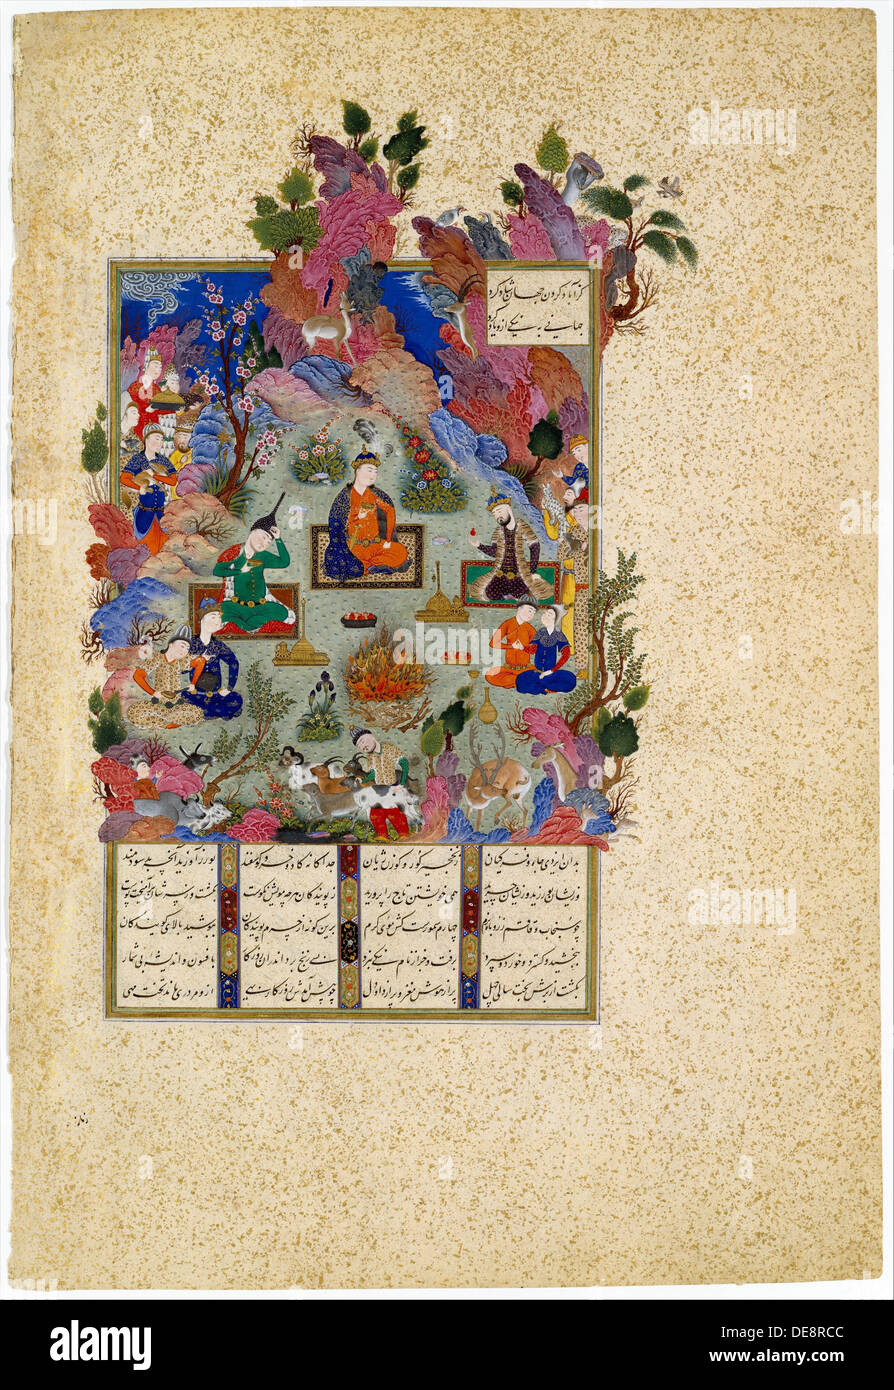 The Feast of Sada. From the Shahnama (Book of Kings), c. 1525. Artist: Sultan Muhammad (1470s-1555) - Stock Image